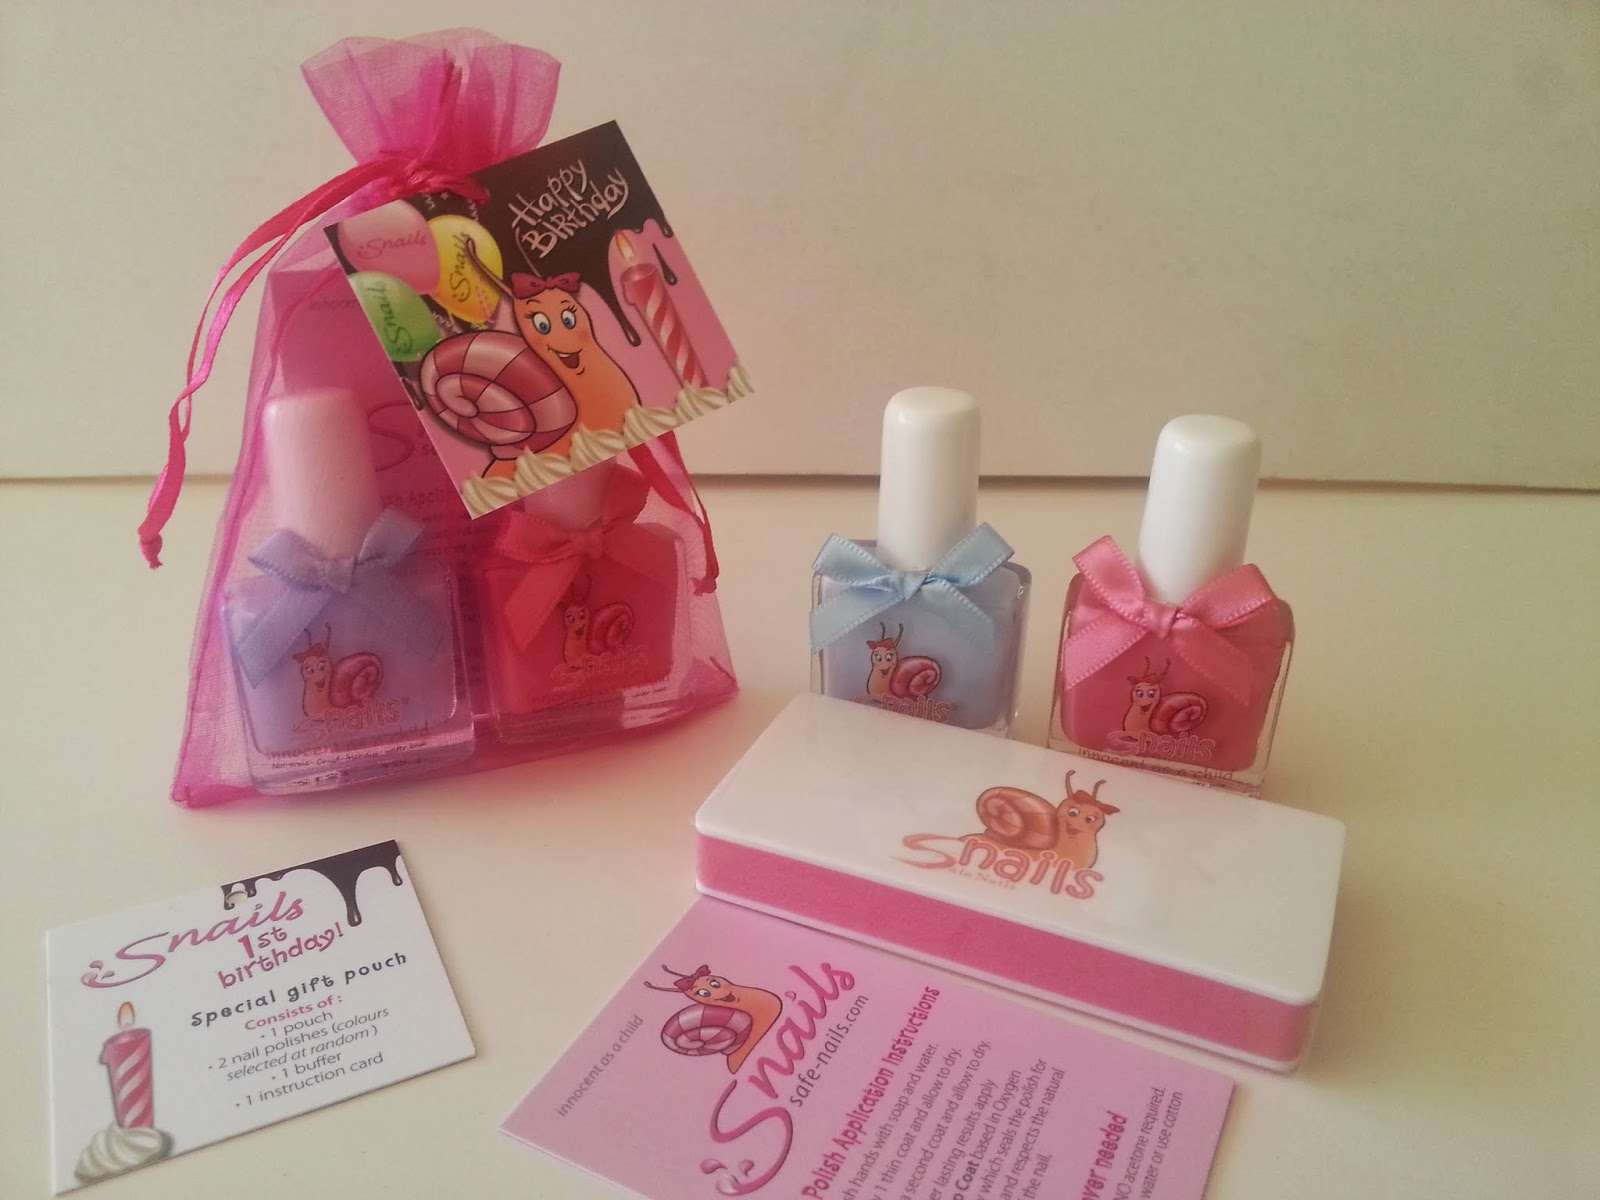 Missys Product Reviews : Snails Safe Nails Review and Giveaway